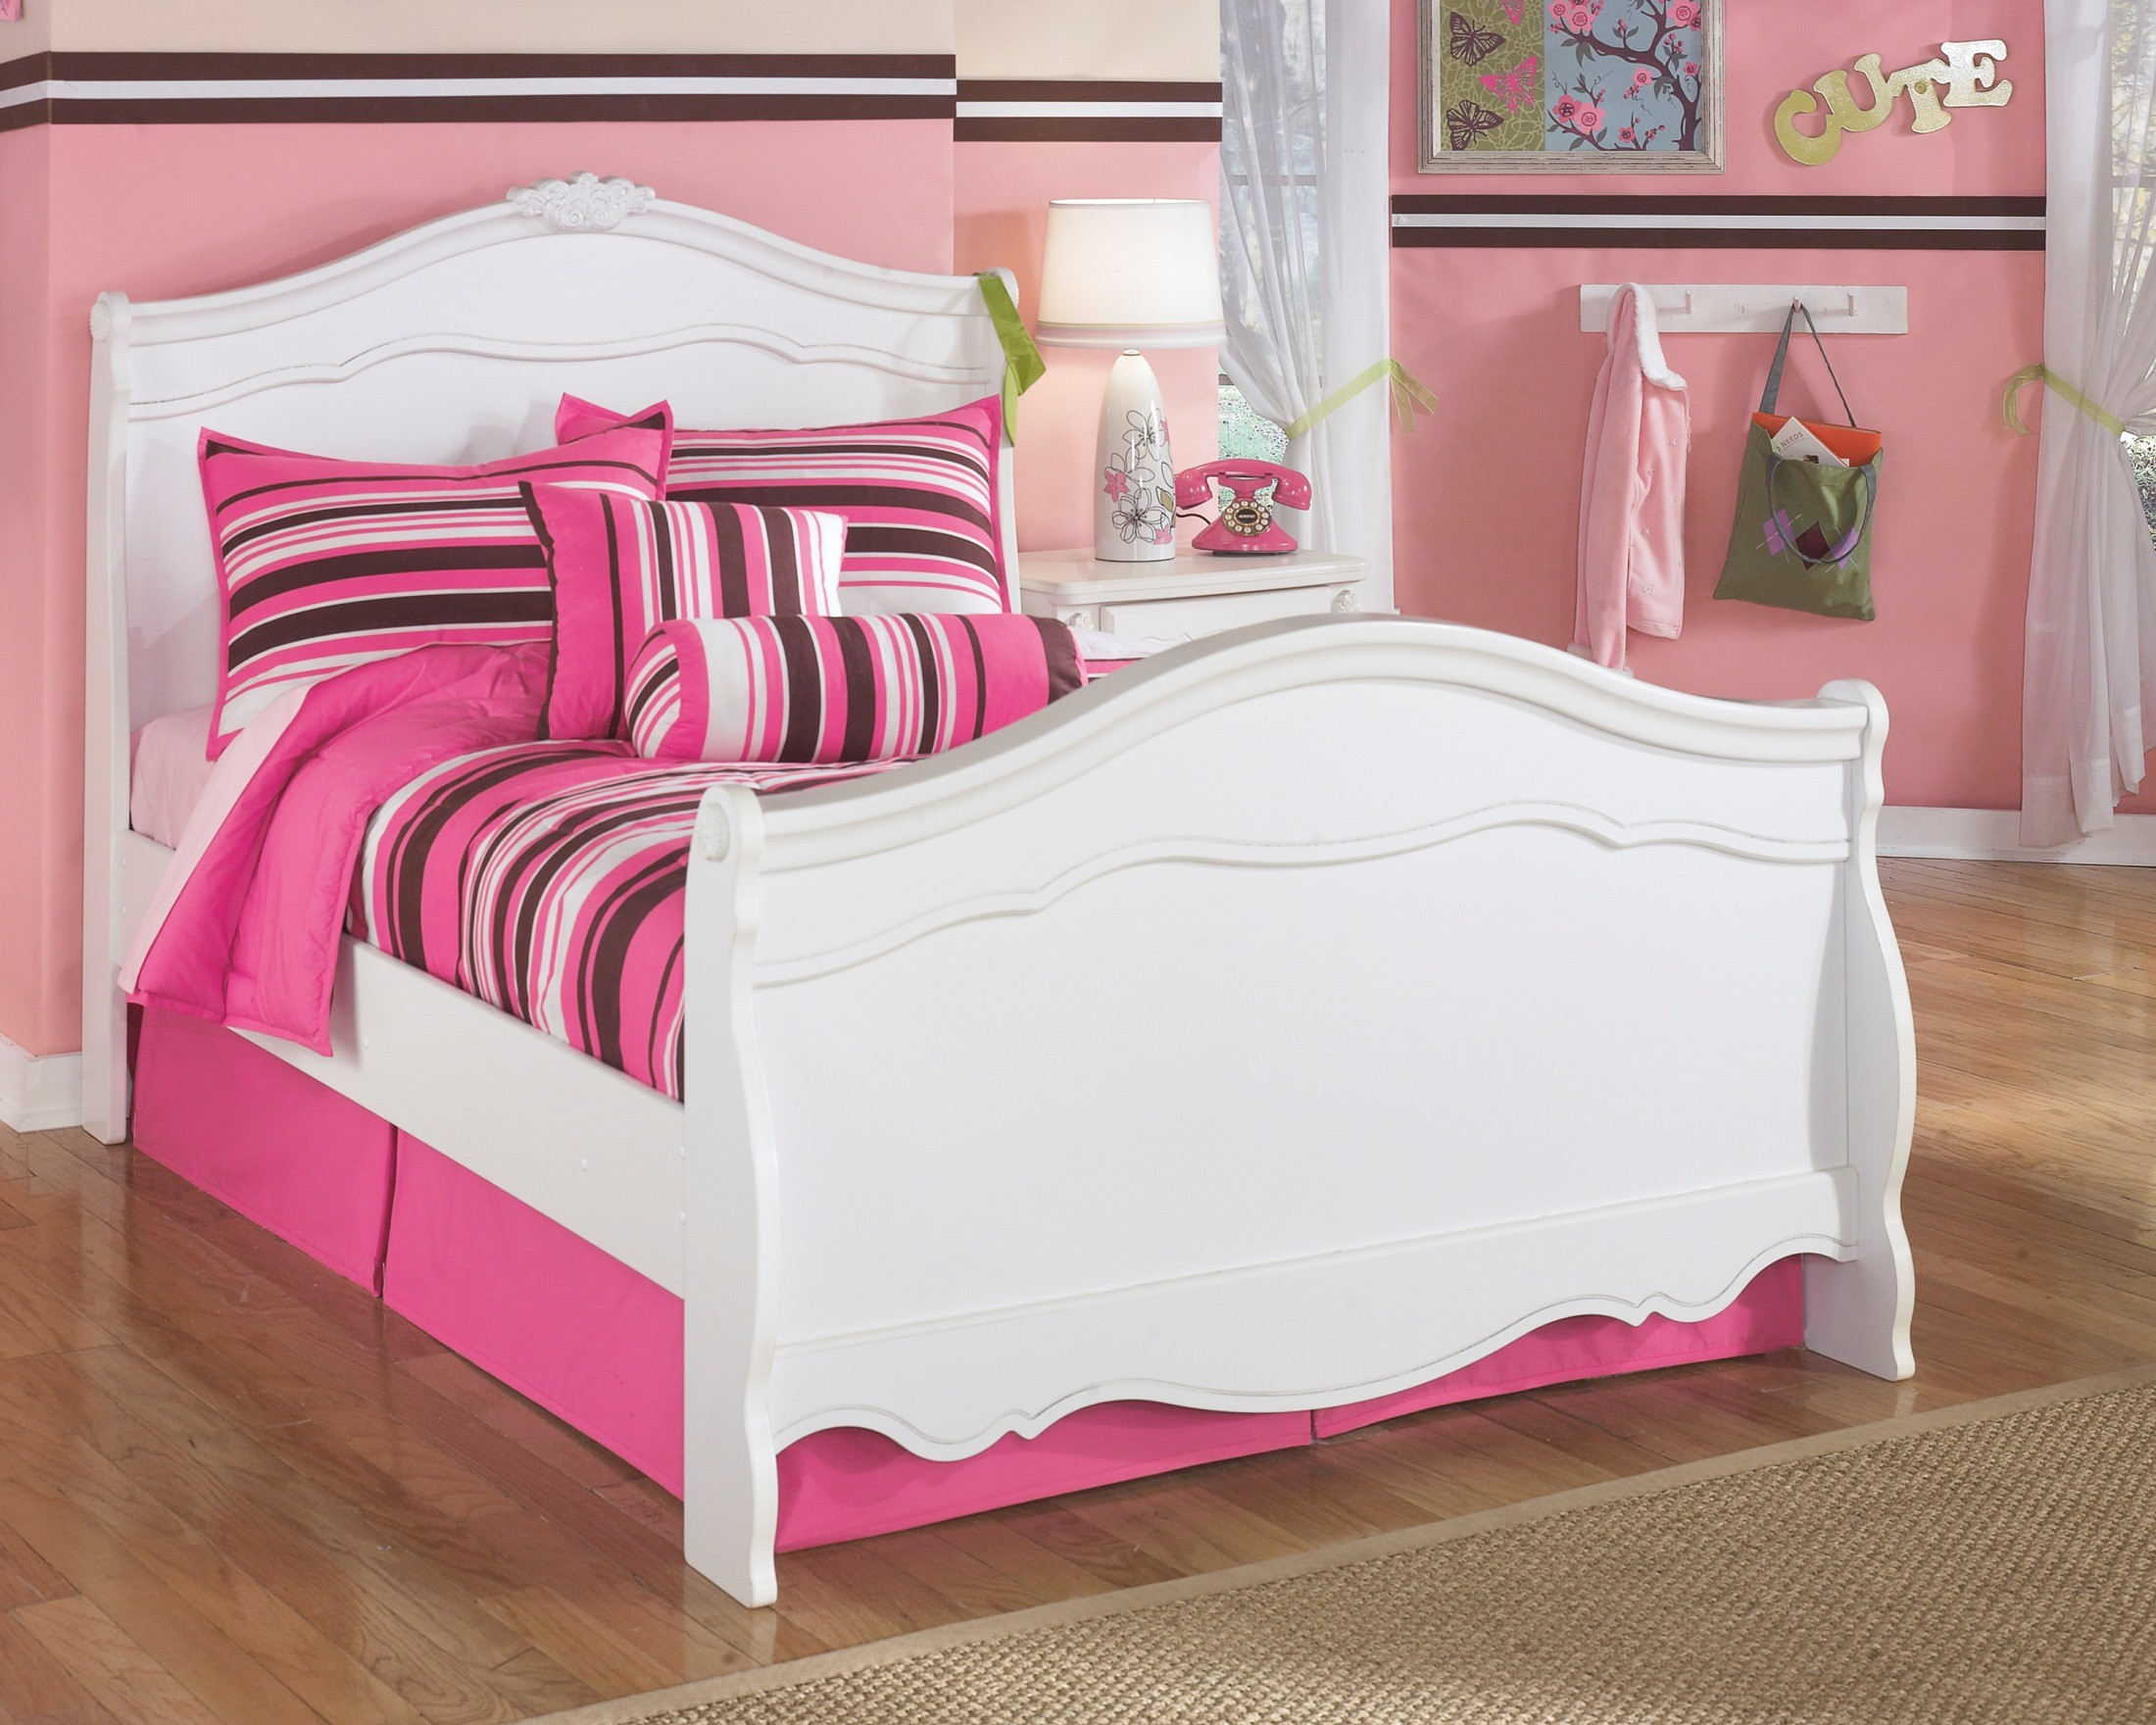 Signature design by ashley exquisite youth sleigh bedroom - Ashley bedroom furniture reviews ...